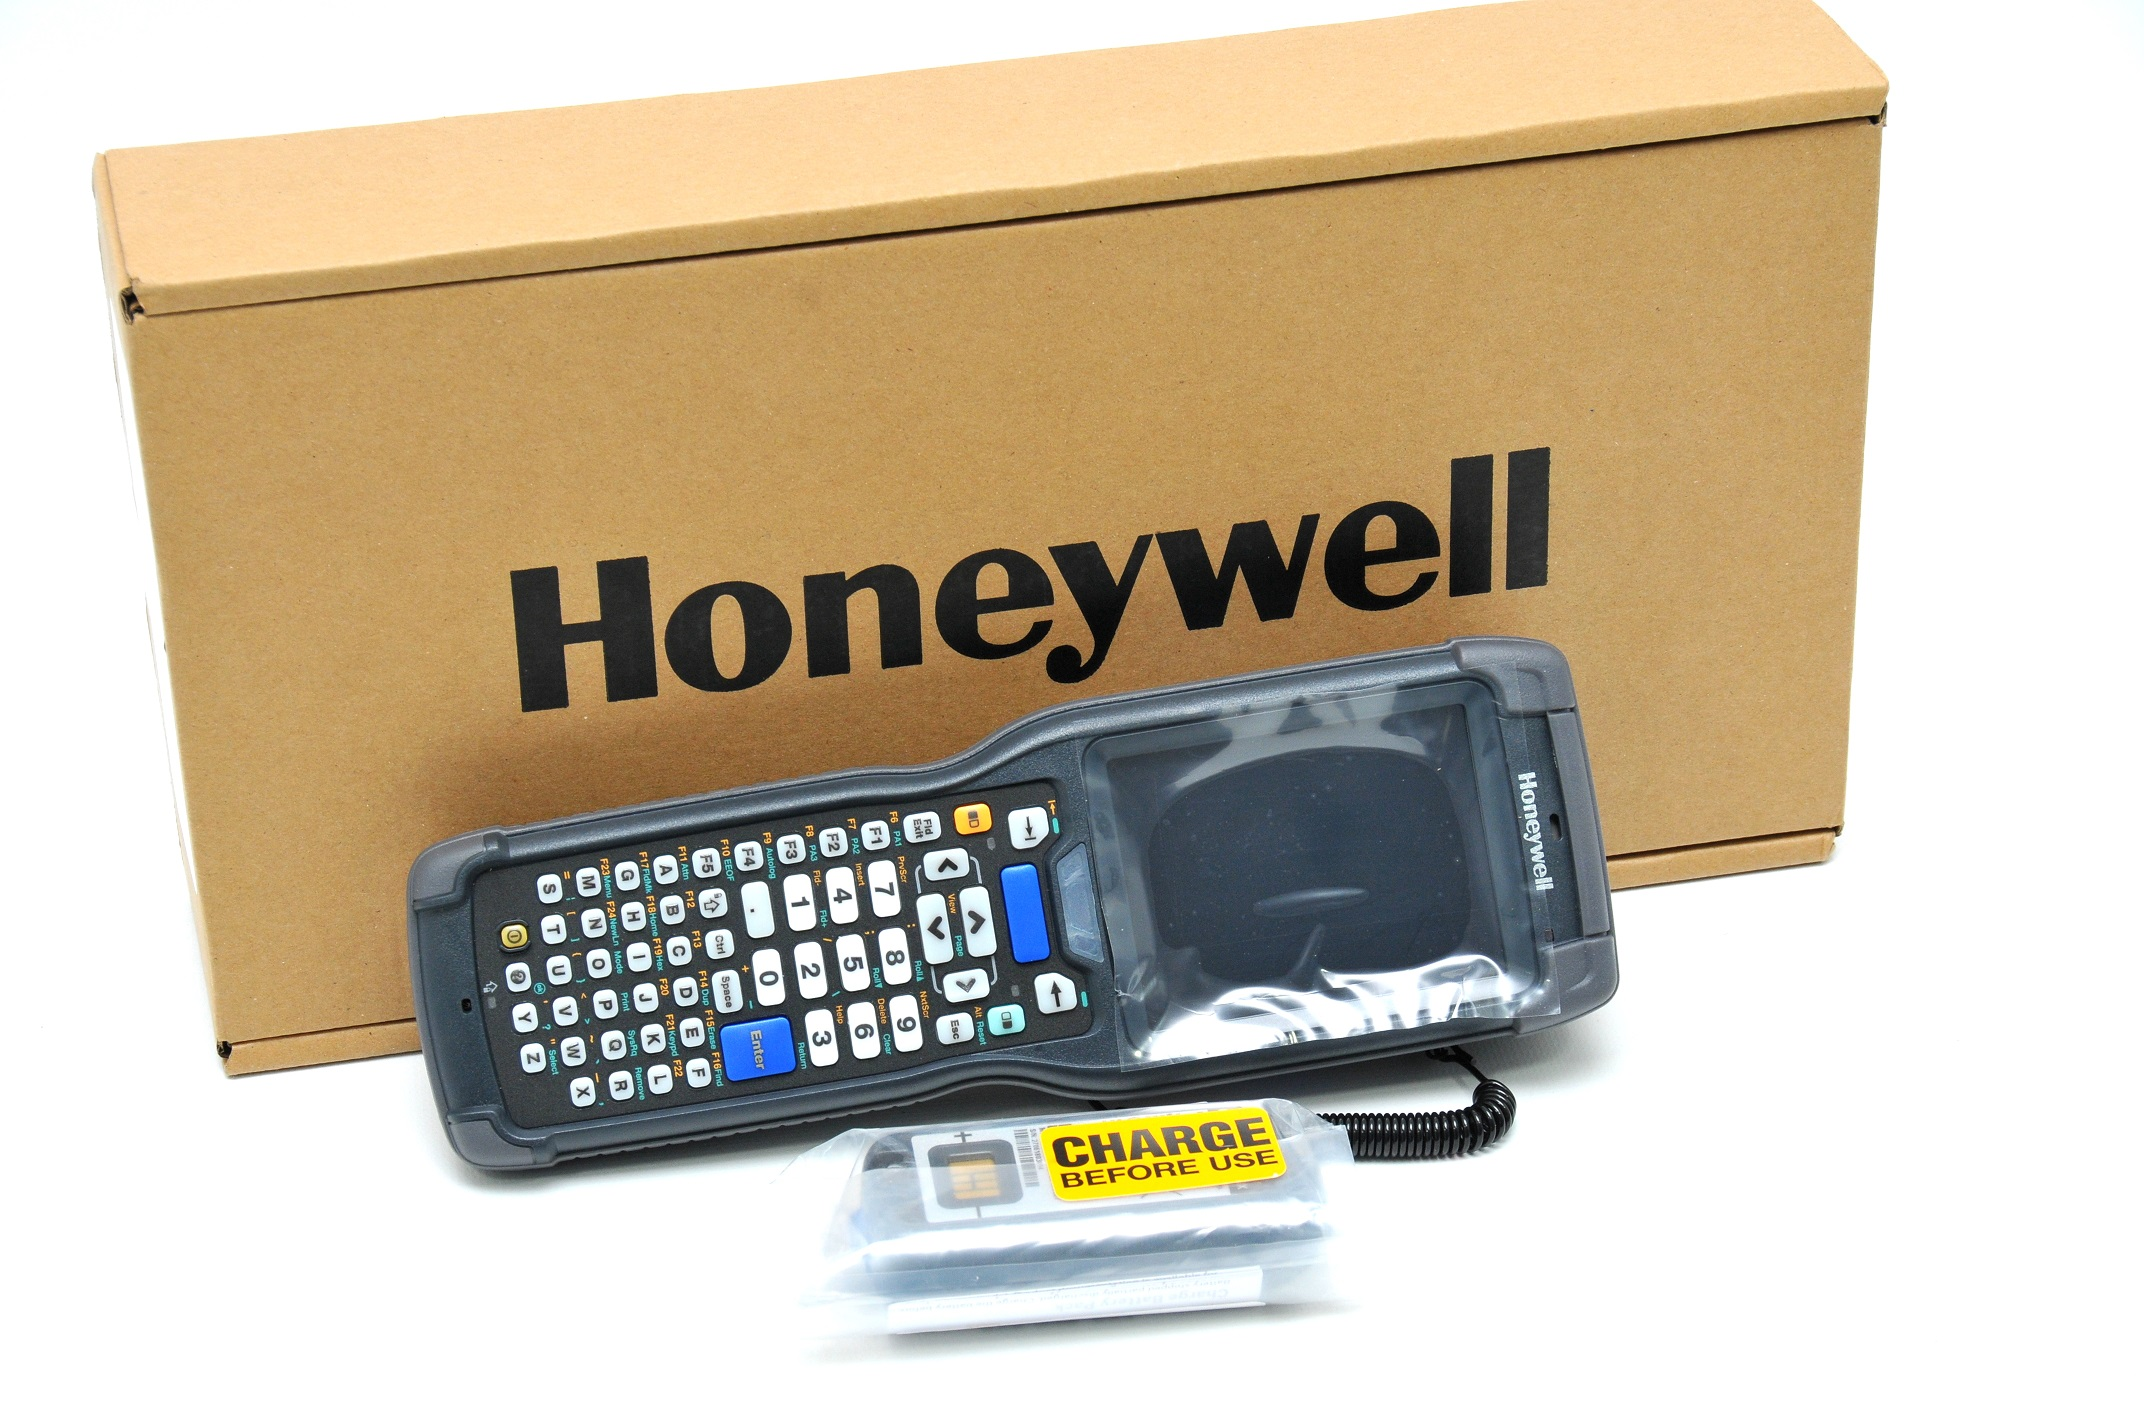 honeywell-scanner-barcode-scanner-repairs